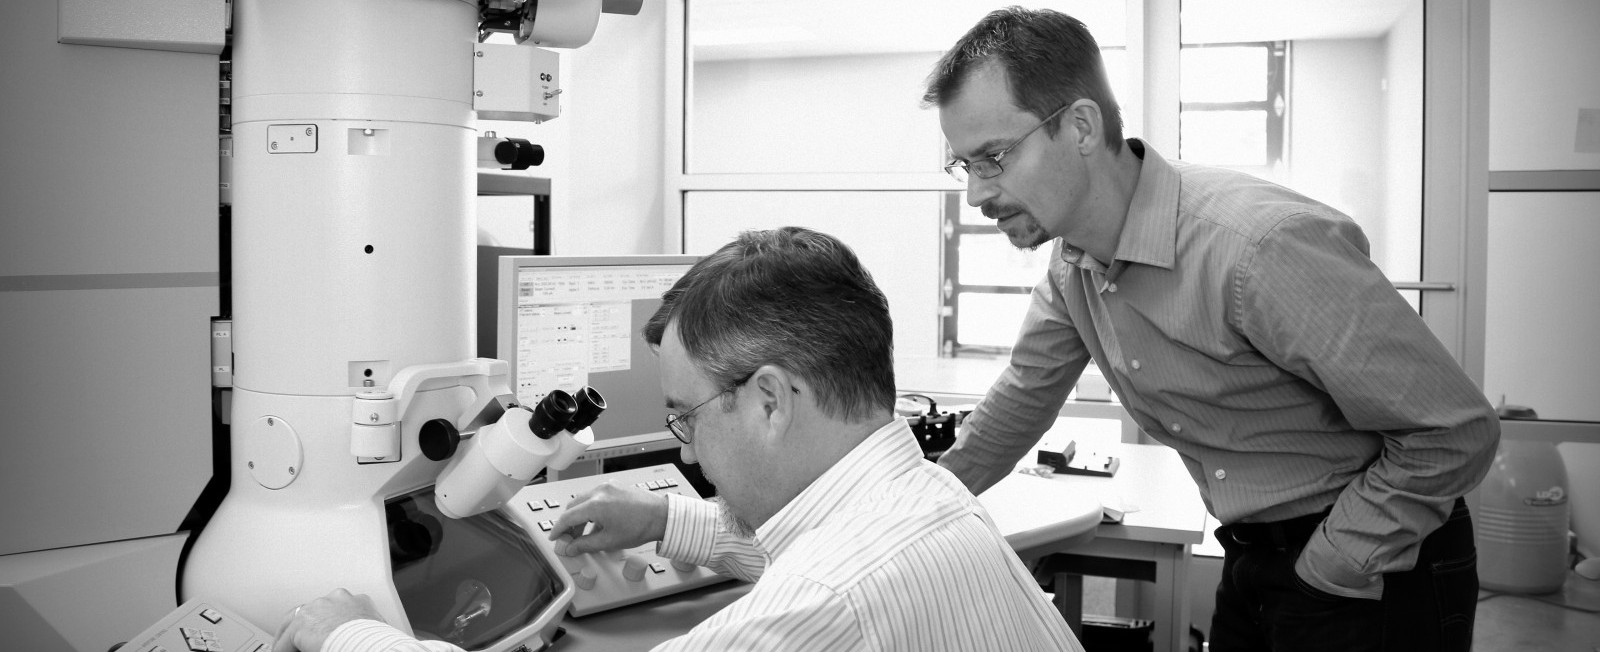 Hummingbird Scientific - Expert Scientists and Microscopists - Eric Stach and Daan Hein Alsem